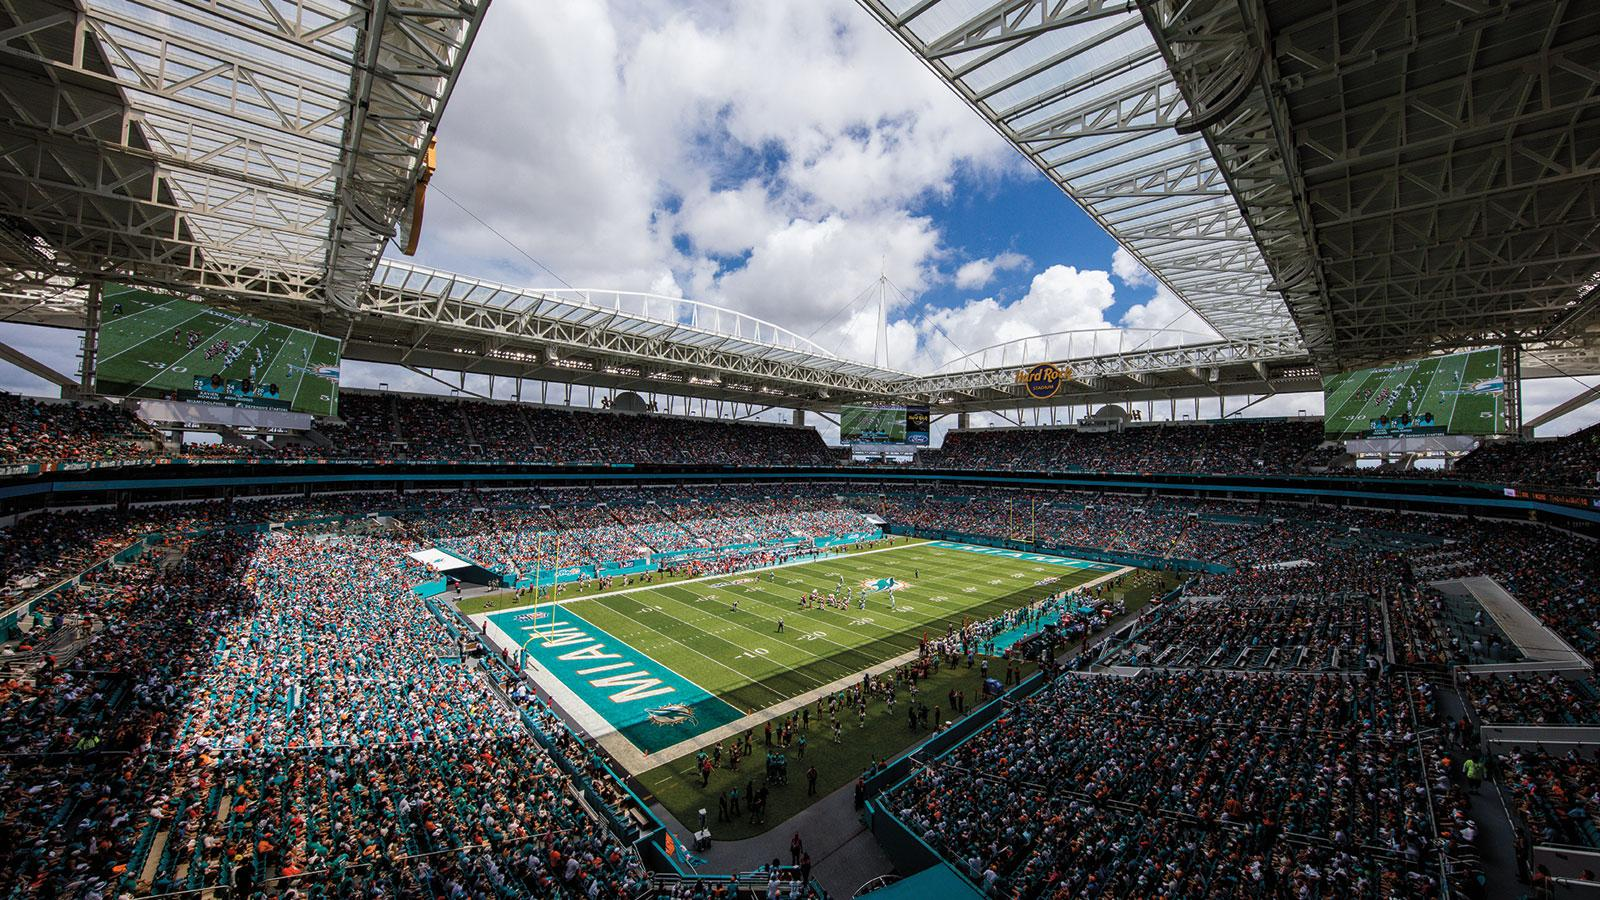 Miami's Hard Rock Stadium maximizes seating in the shade.